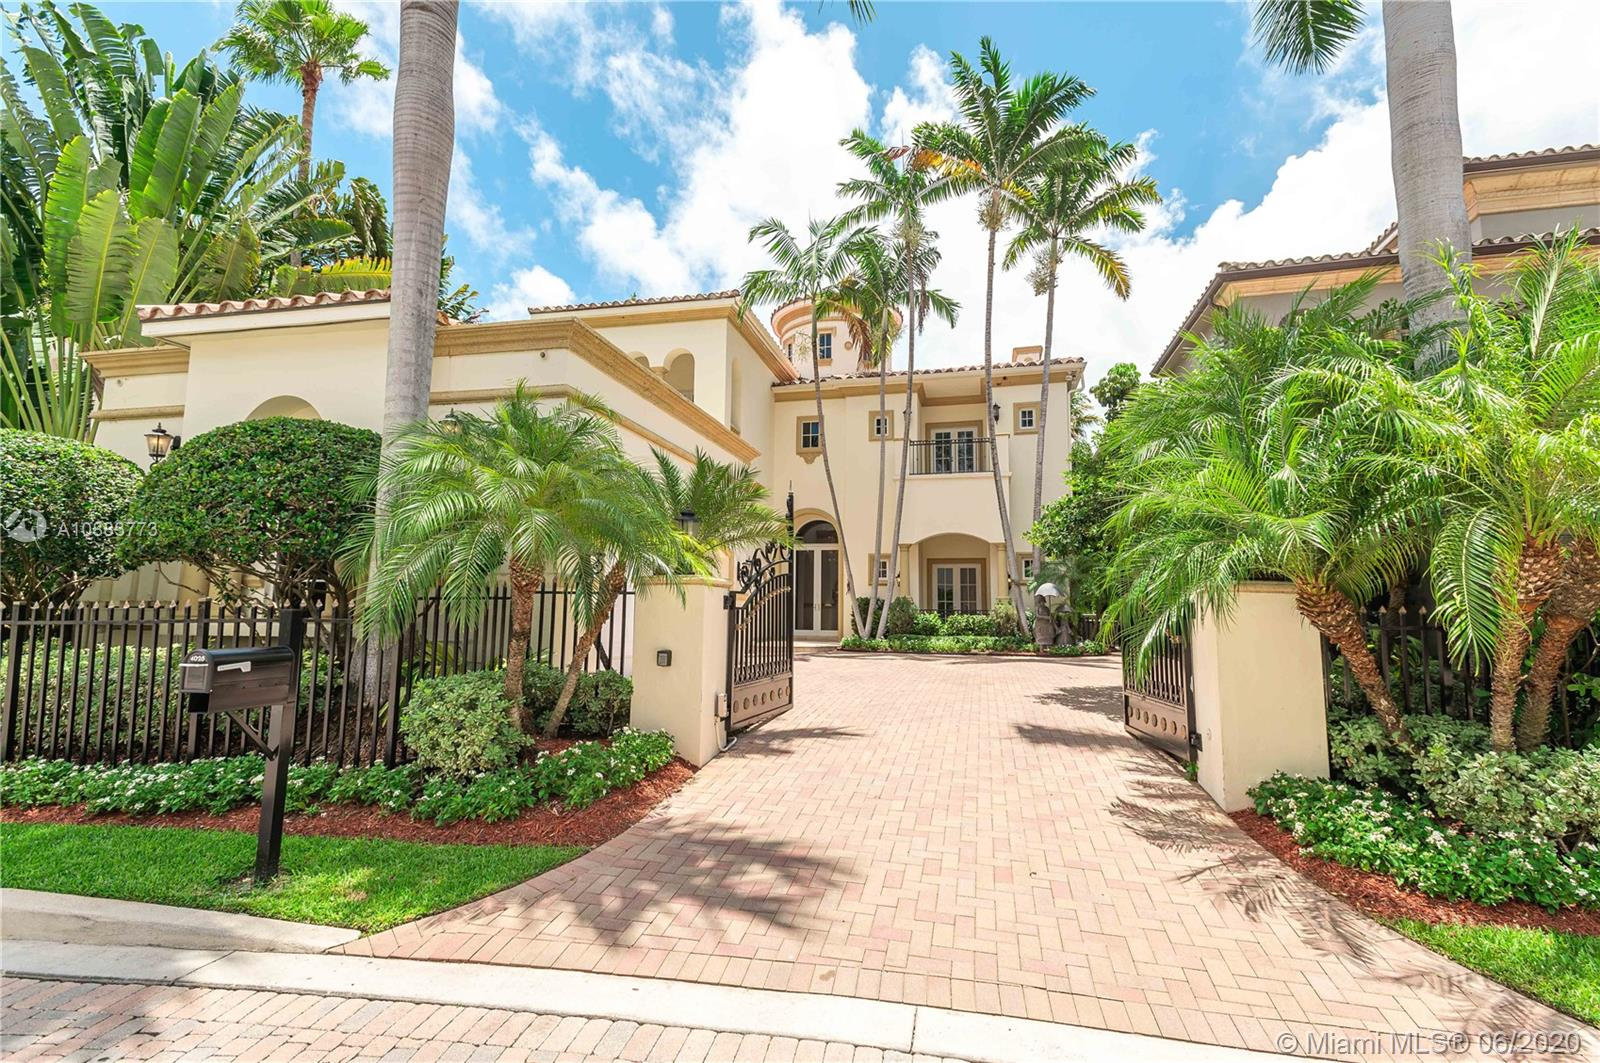 Island Estates is a private grd gated Island in Aventura's most exclusive address w only 22 homes & 12 yacht slips.  This modern Mediterranean mansion has 6 BRS and 6 .5 BA. 6200+ SqFt of beauty that includes a deeded slip for a 100' vessel!. As you walk thru the grand foyer you welcome an open floor plan w/2 1st floor guest rms, formal dining rm, formal bar area, formal living rm, den, chef's eat-in kitchen w/Wolf, Miele & Sub Zero appliances, full laundry facilities & 3 car garage. You can journey up the grand staircase or take the elevator to the 2nd fl where there are 2 lg guest bedrms w/ensuite bathrms. 2nd full laundry rm & the dreamy mstr bedrm & bathrm. this open concept home is timeless w/water views from every room. Security is key & the Island has a private roaming guard.